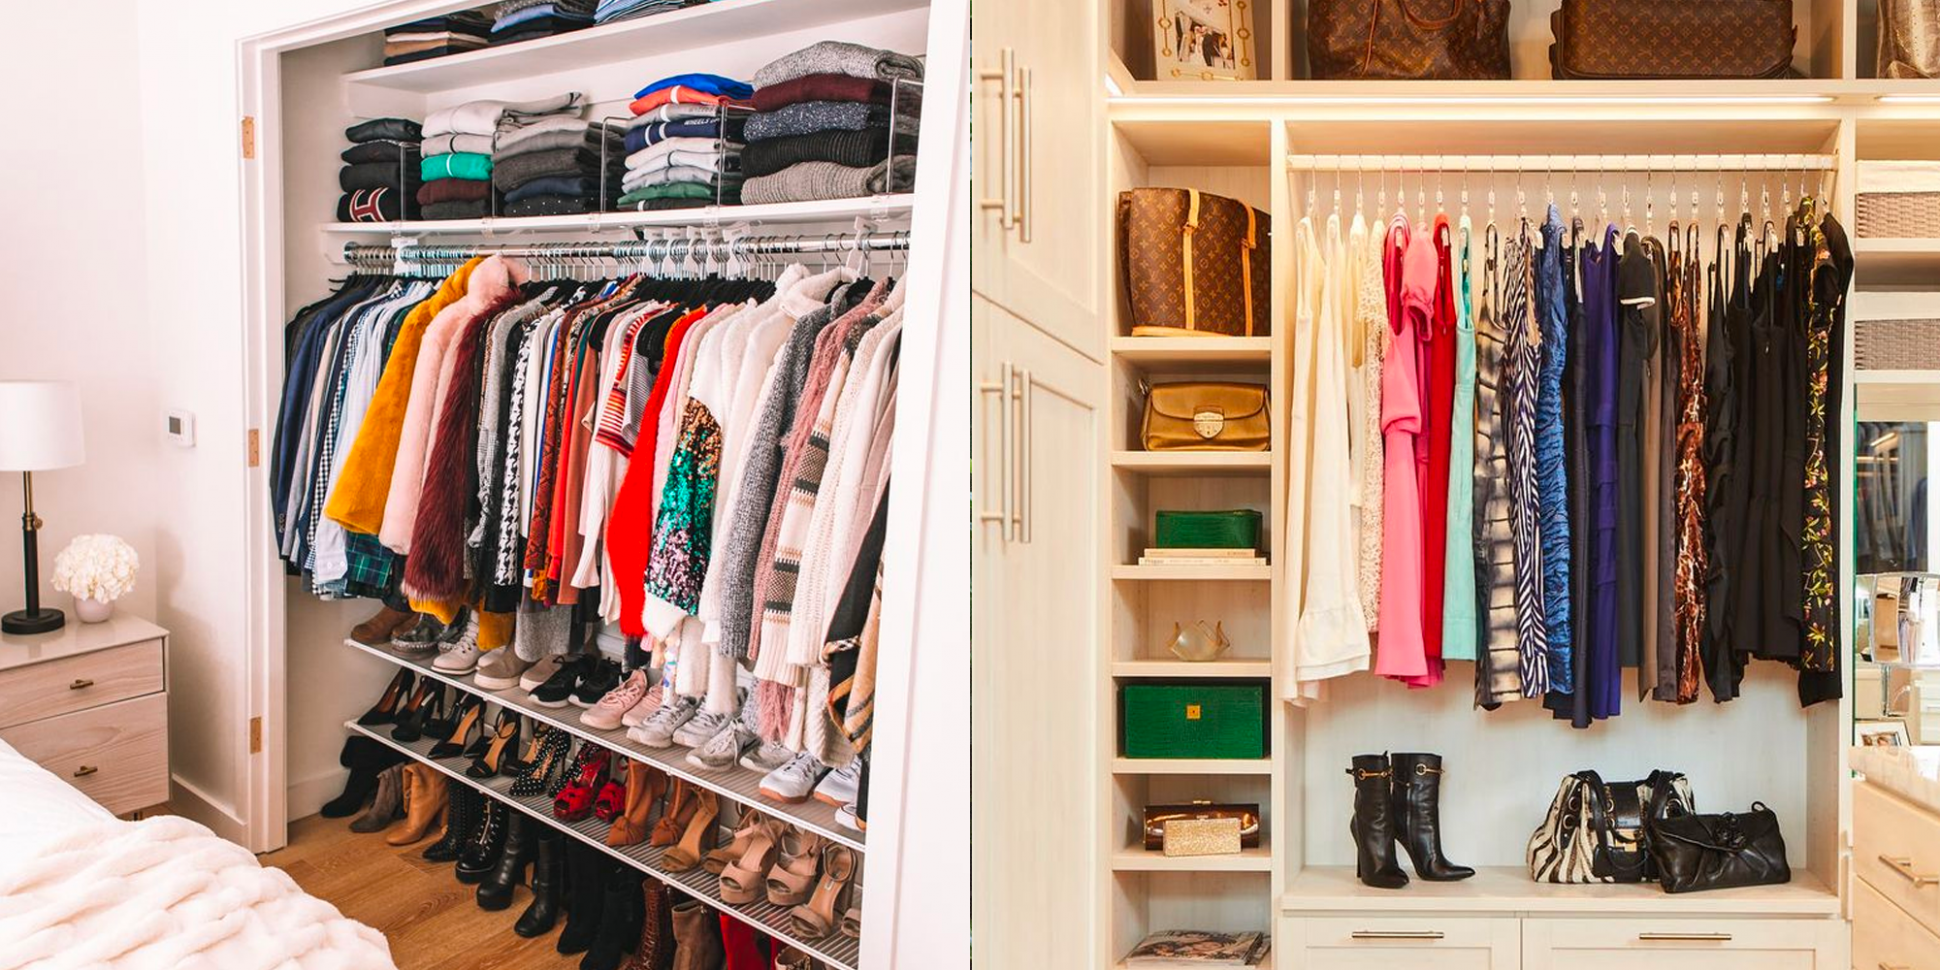 12 Best Closet Organizing Ideas